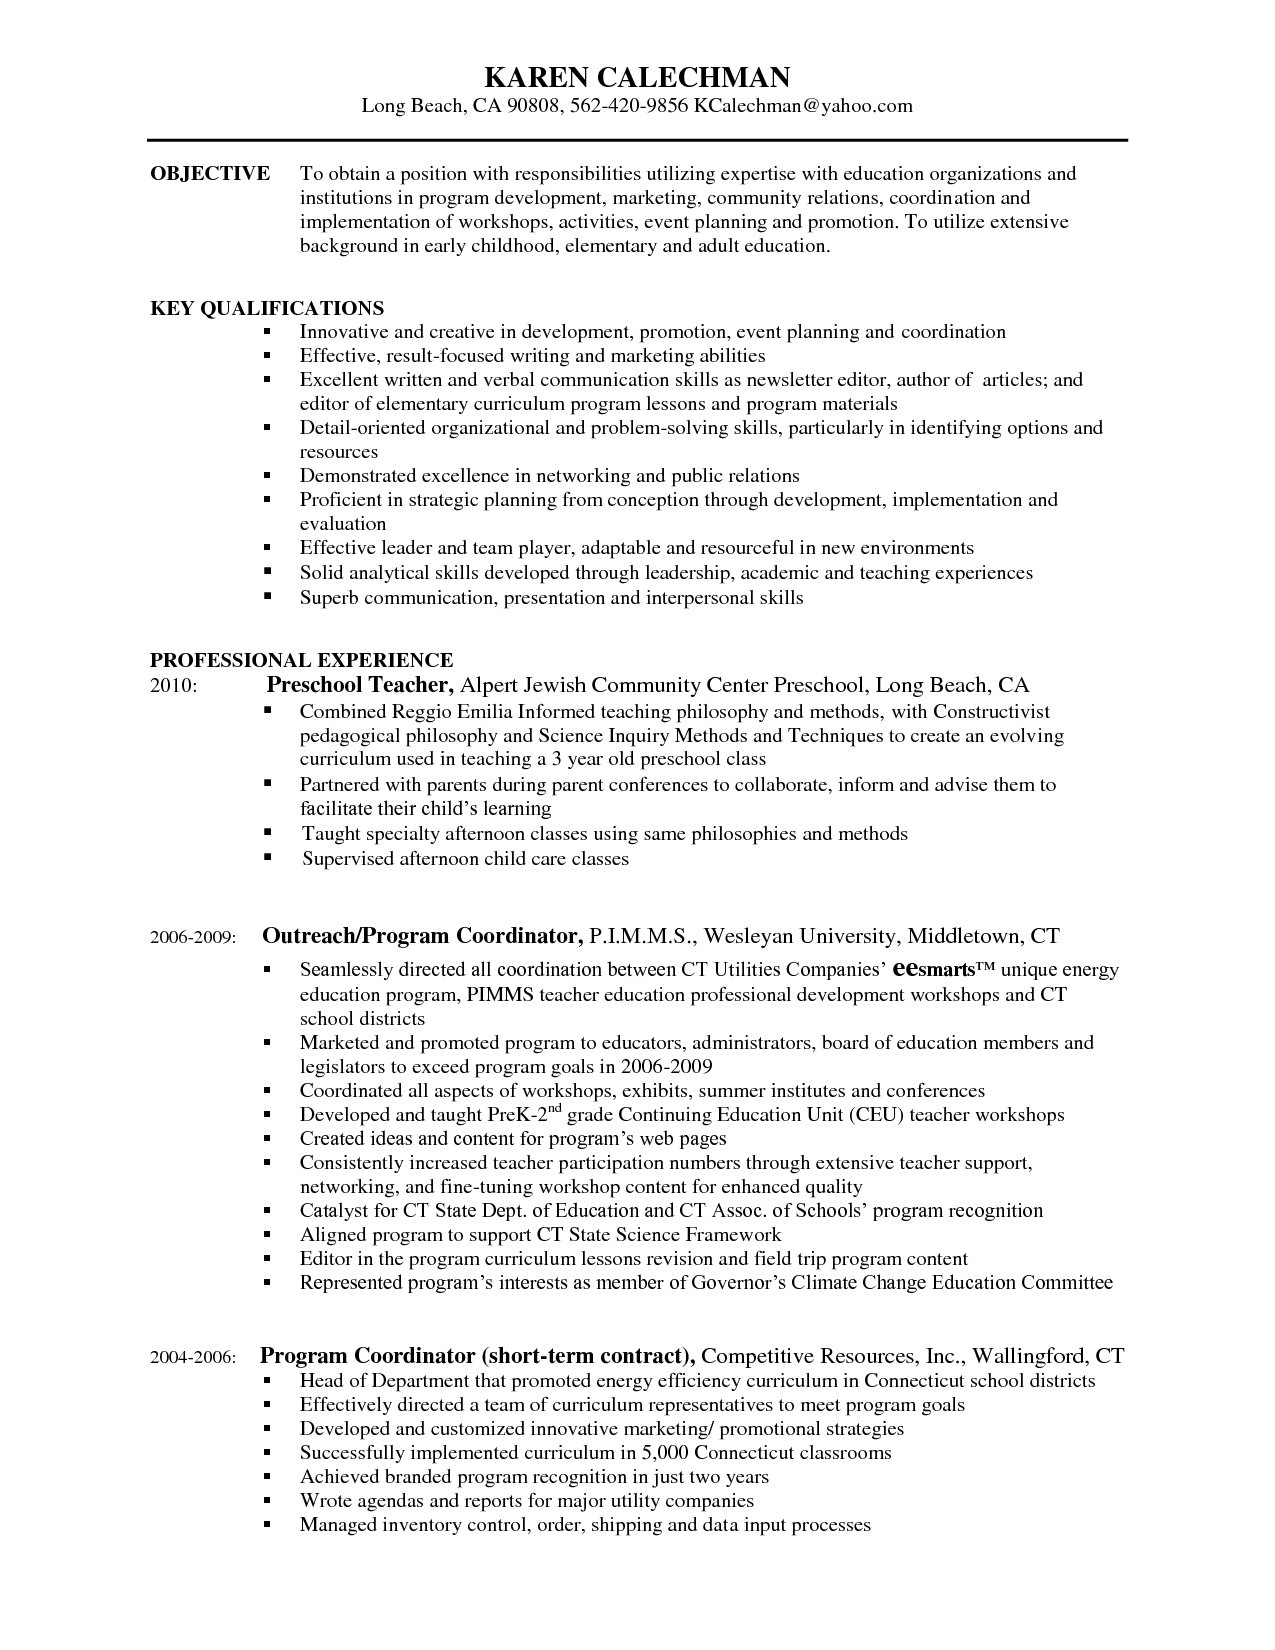 Sample Resume Objectives Educational Leader Resume Objective Sample Skills After School